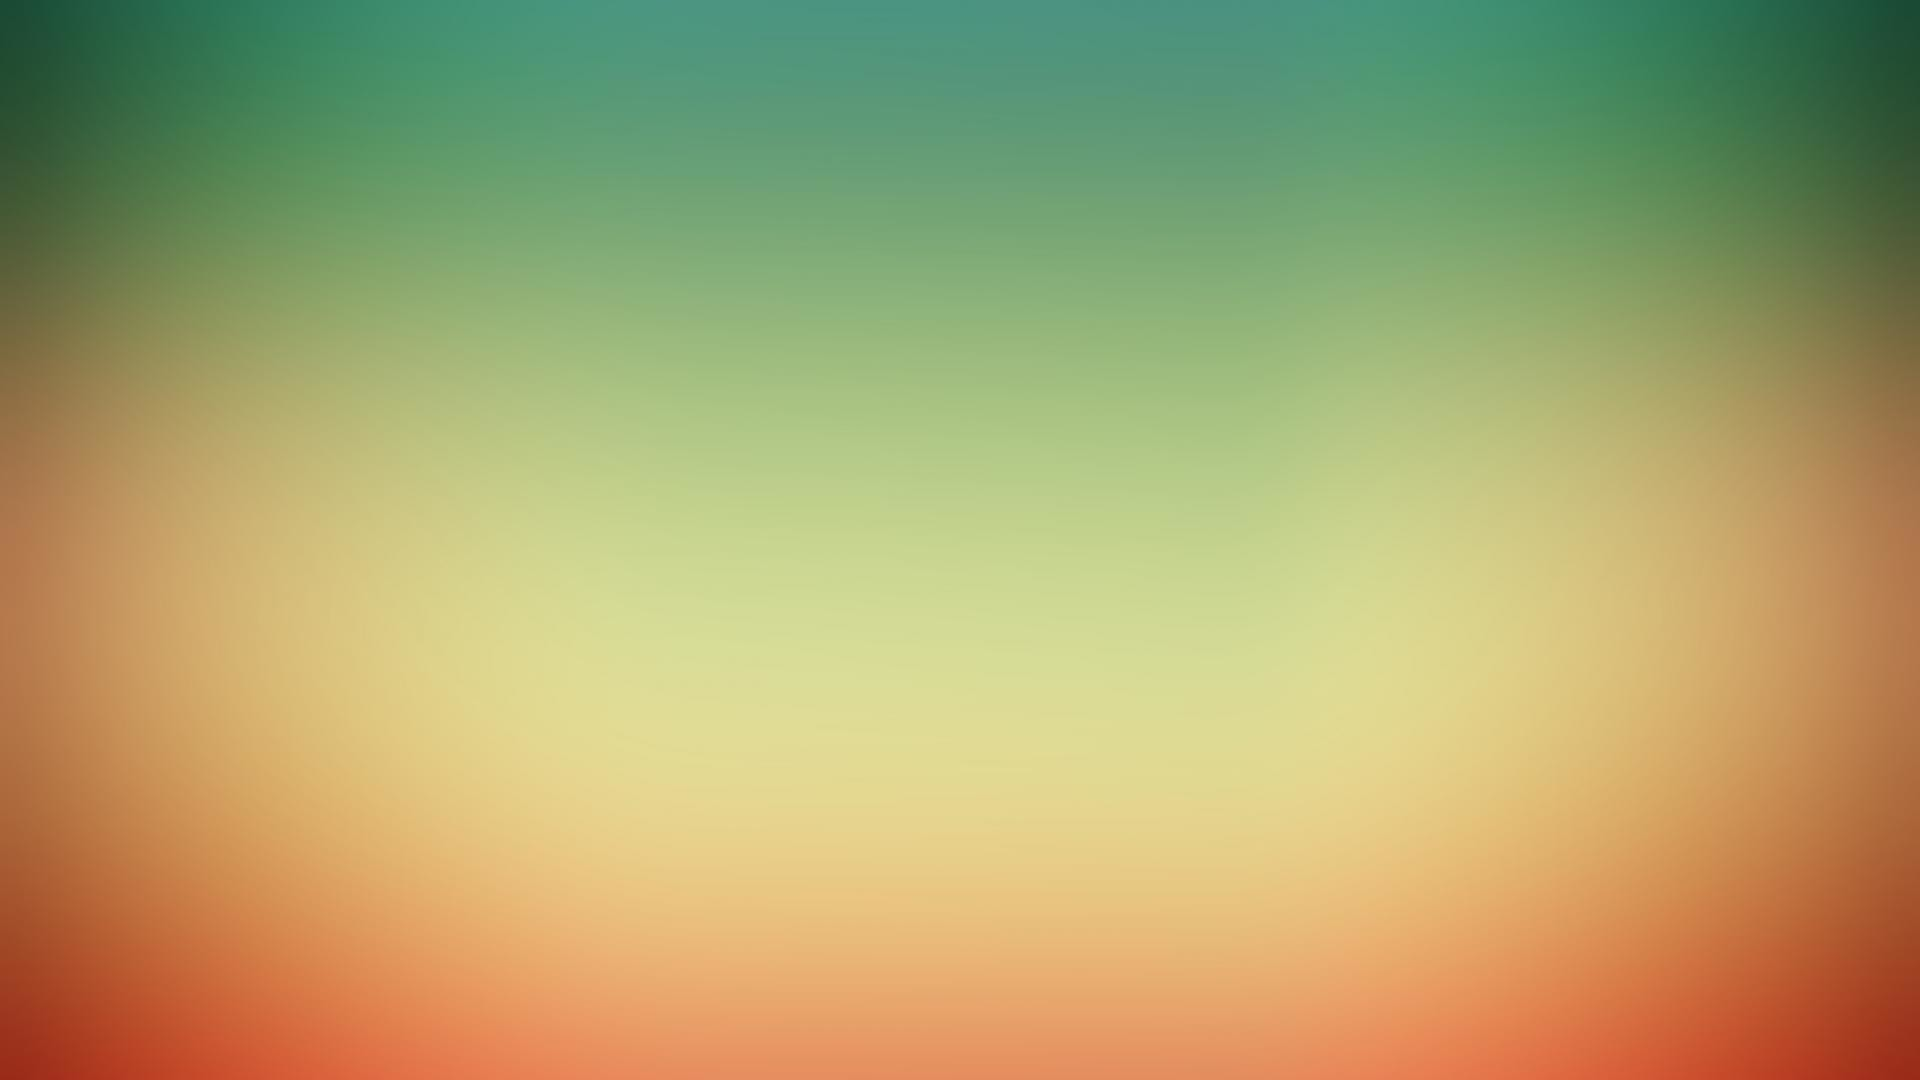 Docky Color Gradient Bars for wallpapers on the App Store